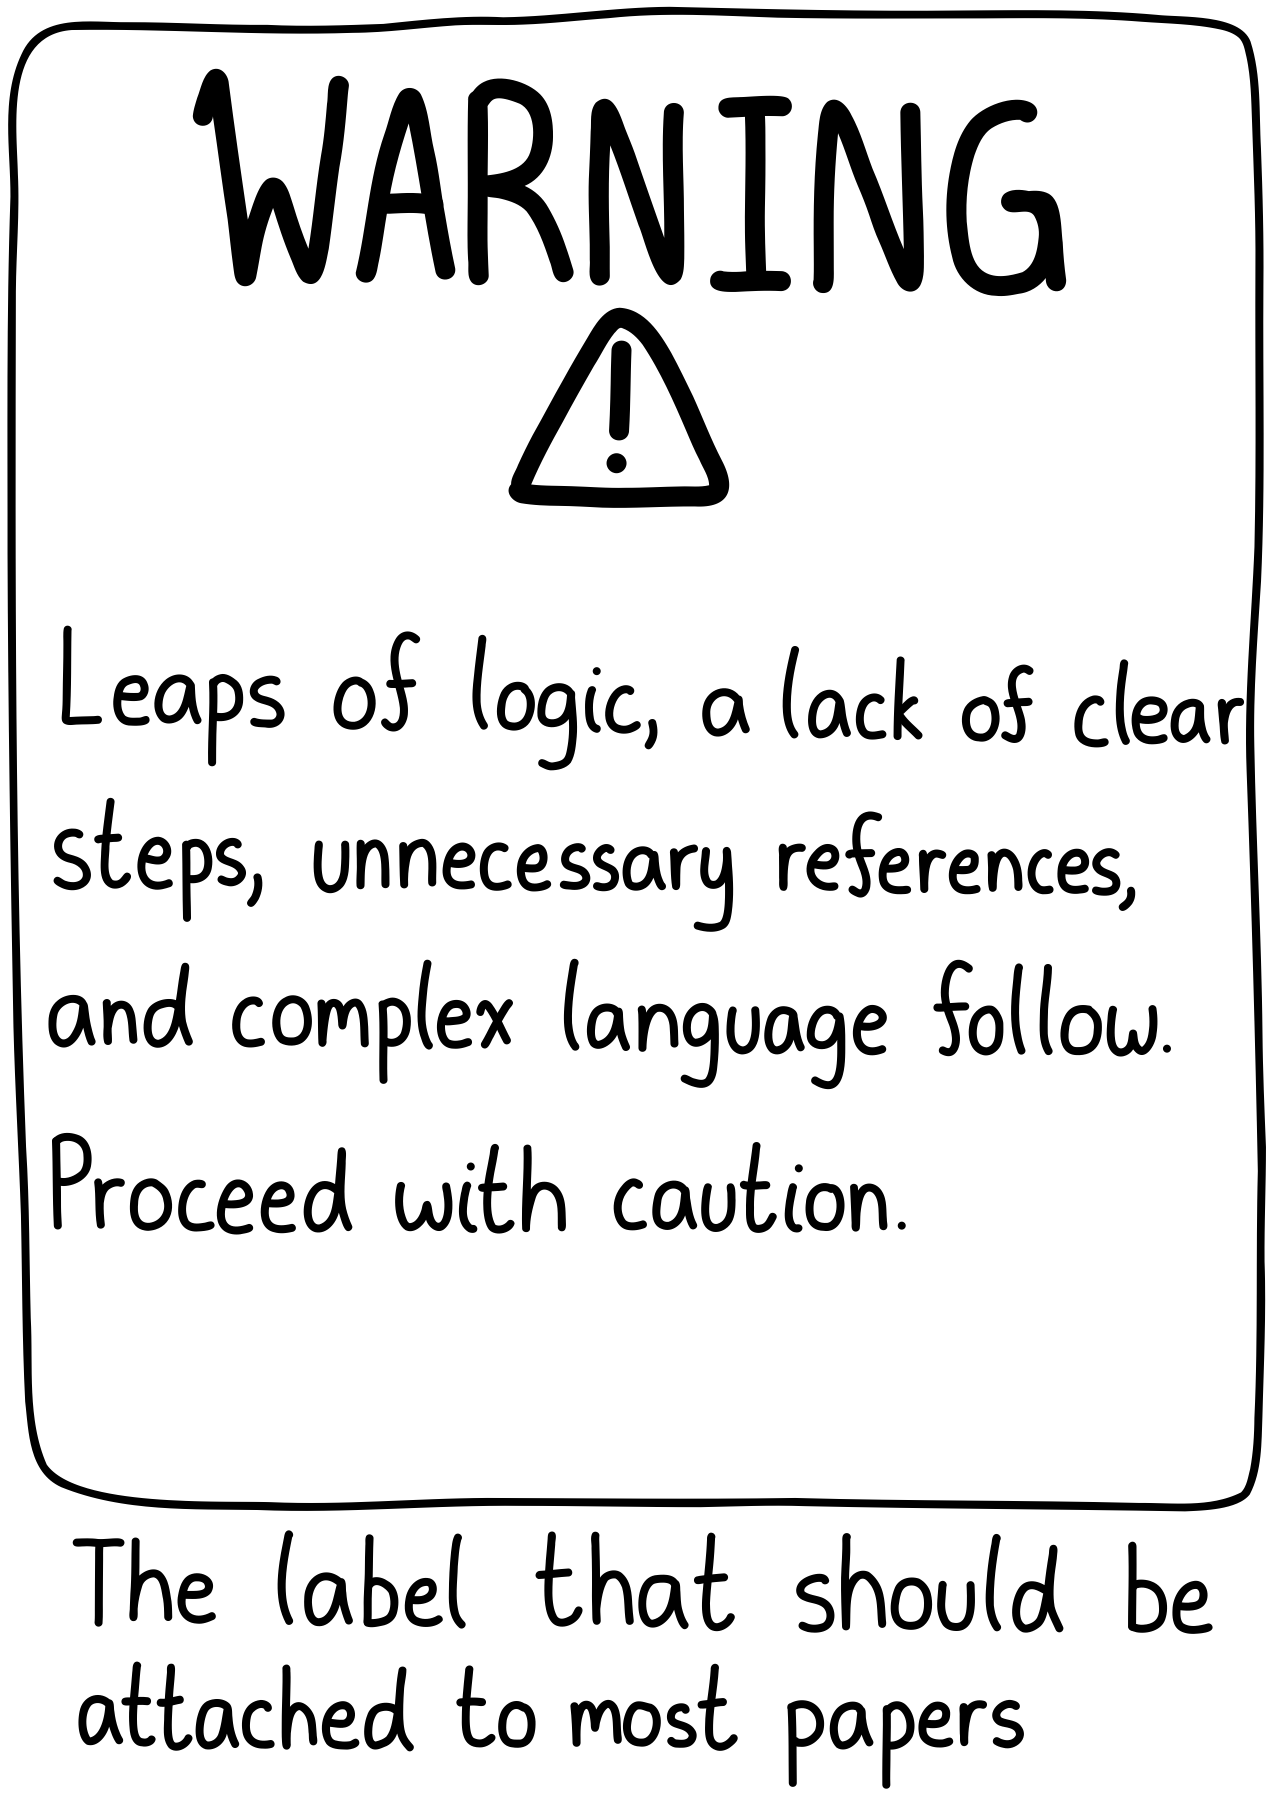 A label: Warning! Leaps of logic, a lack of clear steps, unnecessary references, and complex language follow. Proceed with caution. Caption: The label that should be attached to most papers.